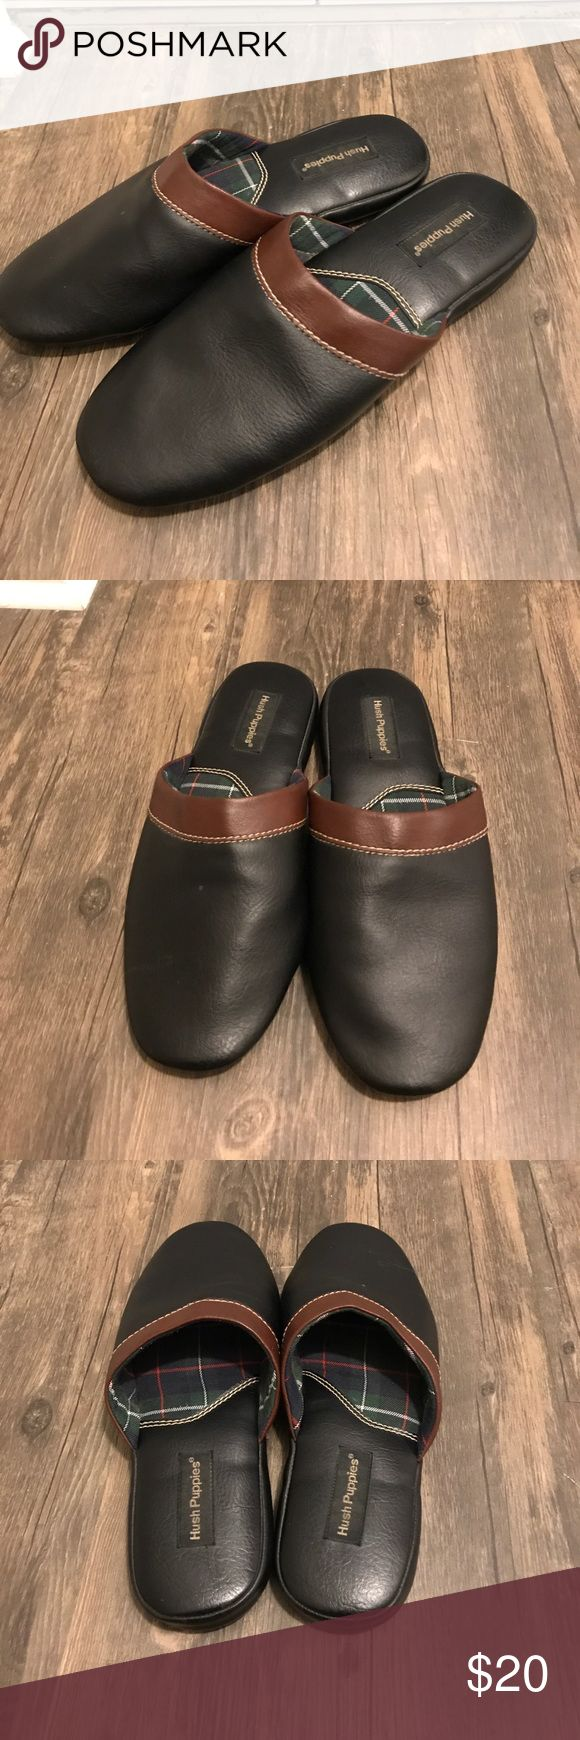 Hush puppies leather slippers size 11 Leather slippers in good condition size 11. Black and brown leather Hush Puppies Shoes Sandals & Flip-Flops